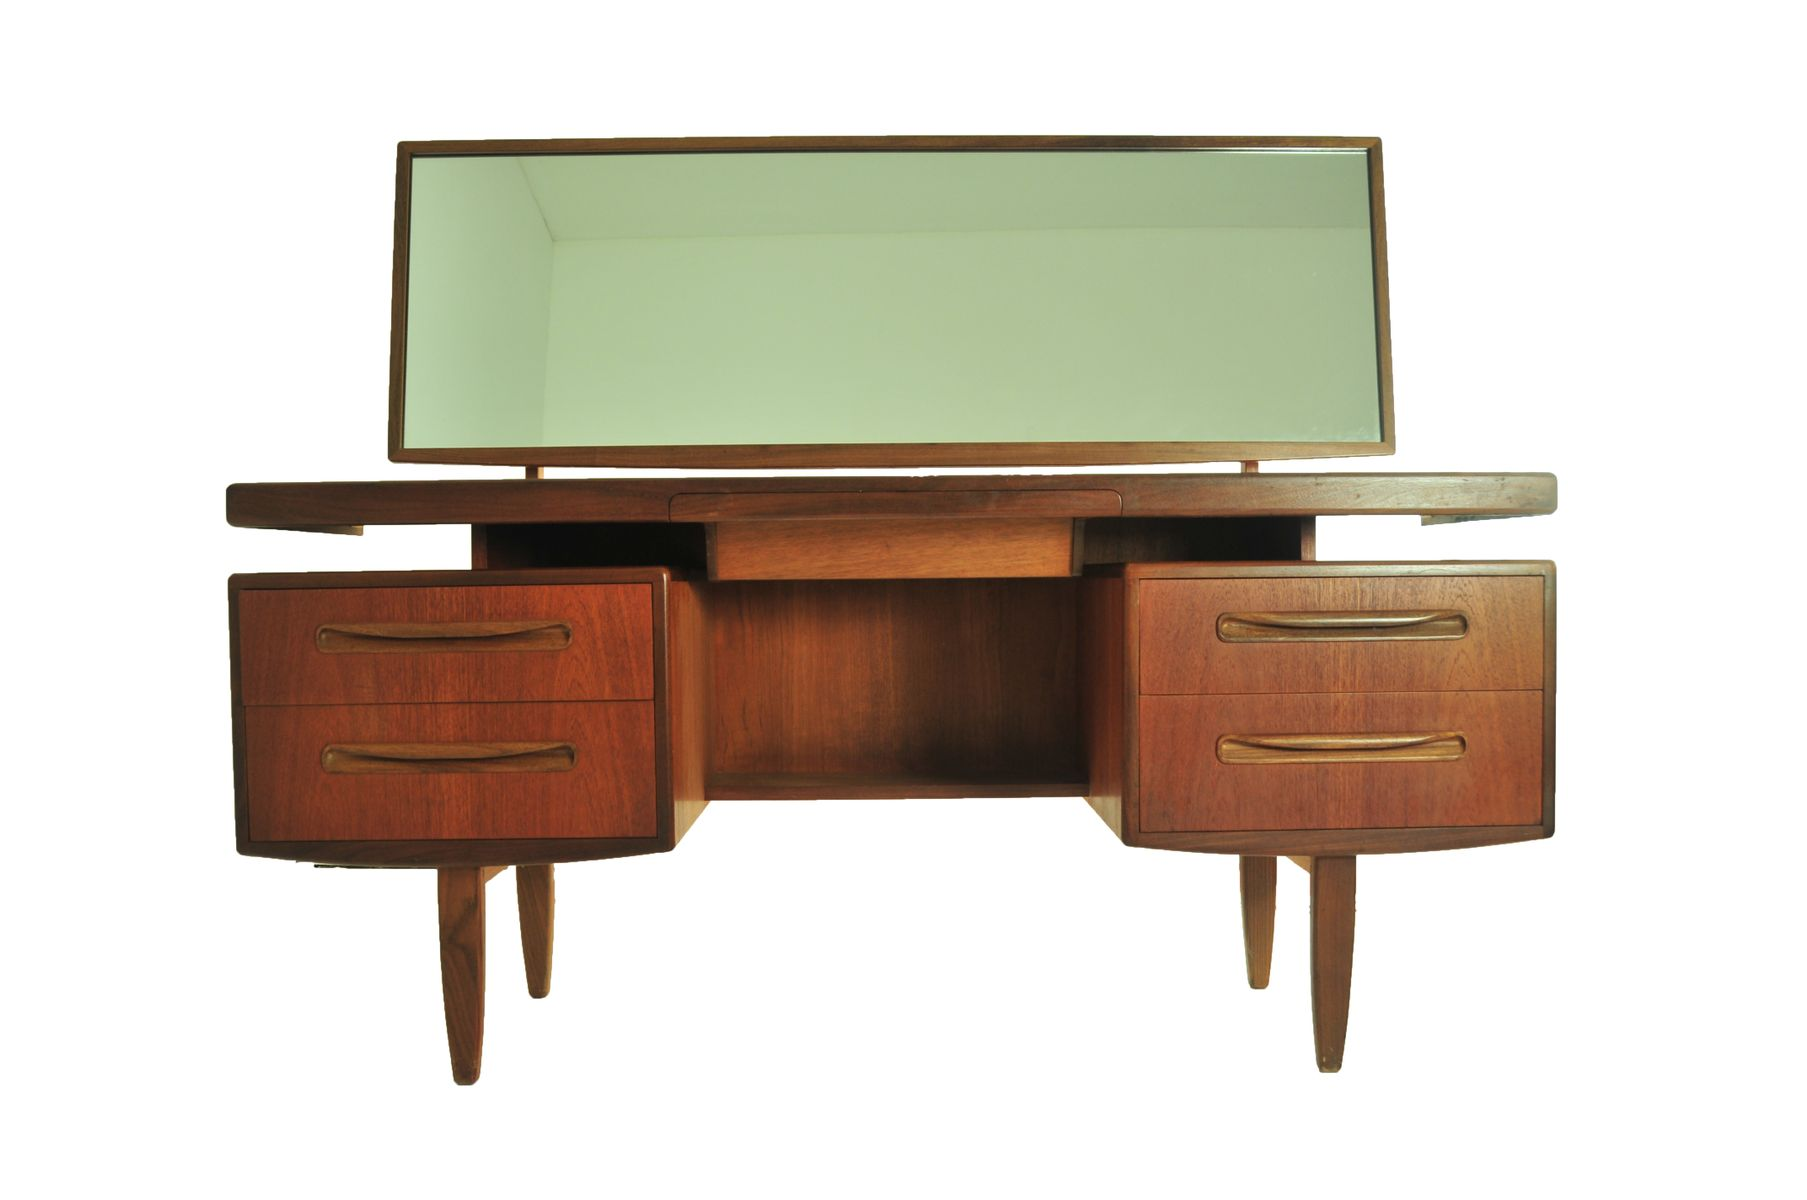 Vintage dressing table from g plan for sale at pamono for Retro dressing table